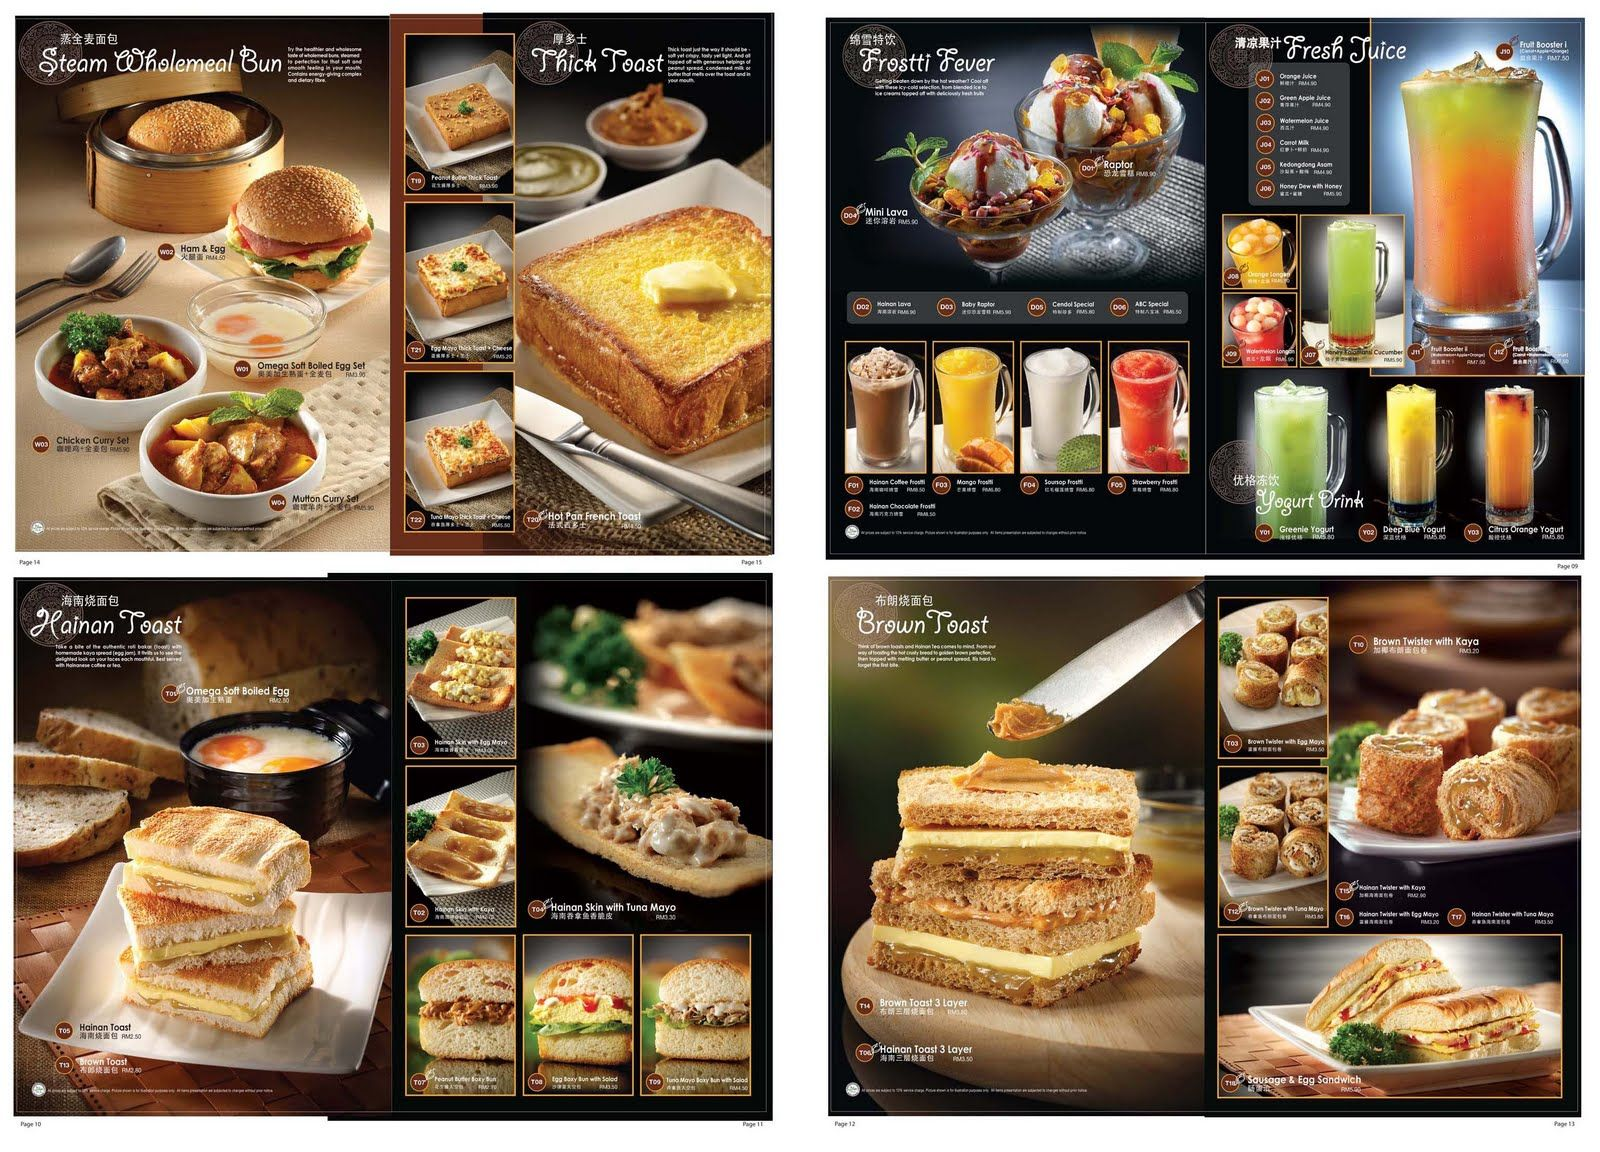 Menu Design Ideas 20 impressive restaurant menu designs Done This Design During 2010 August For Hainan Tea First Outlet At Pj It Consider Generation Menu Design That I Design For Them